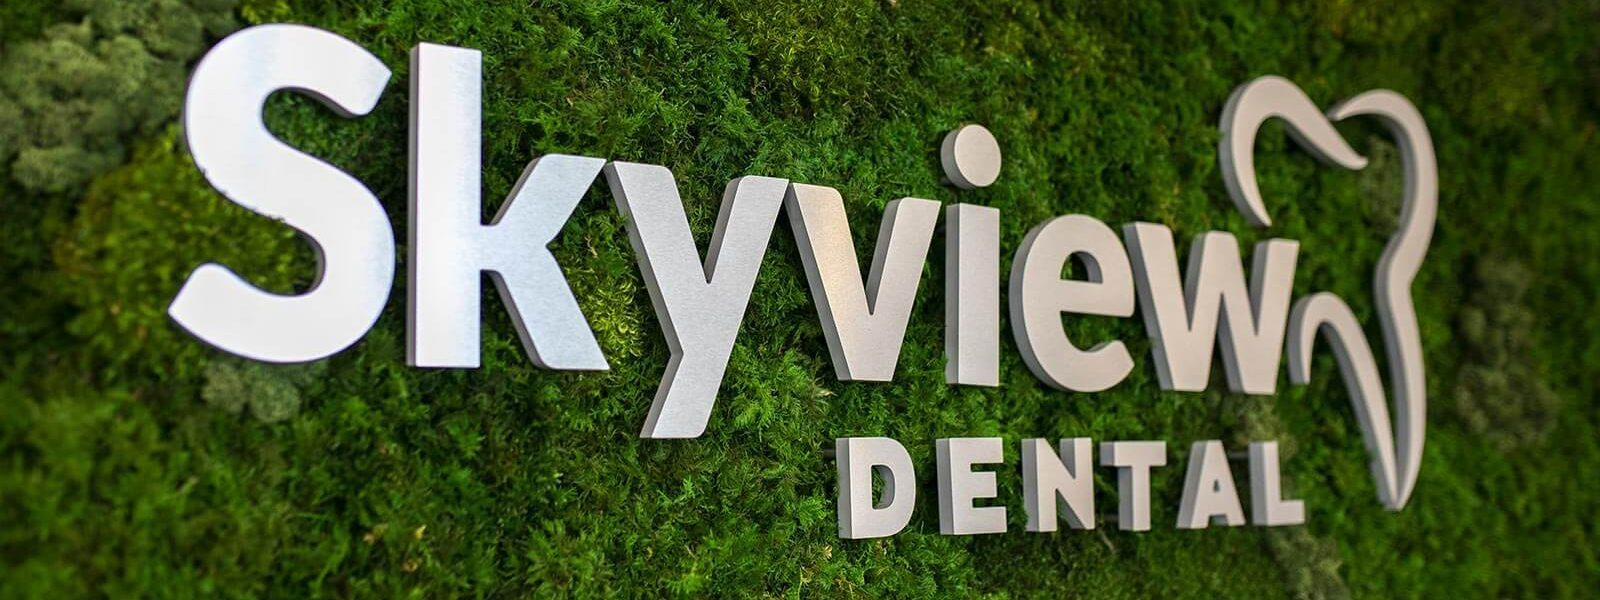 Skyview Dental clinic branded backdrop